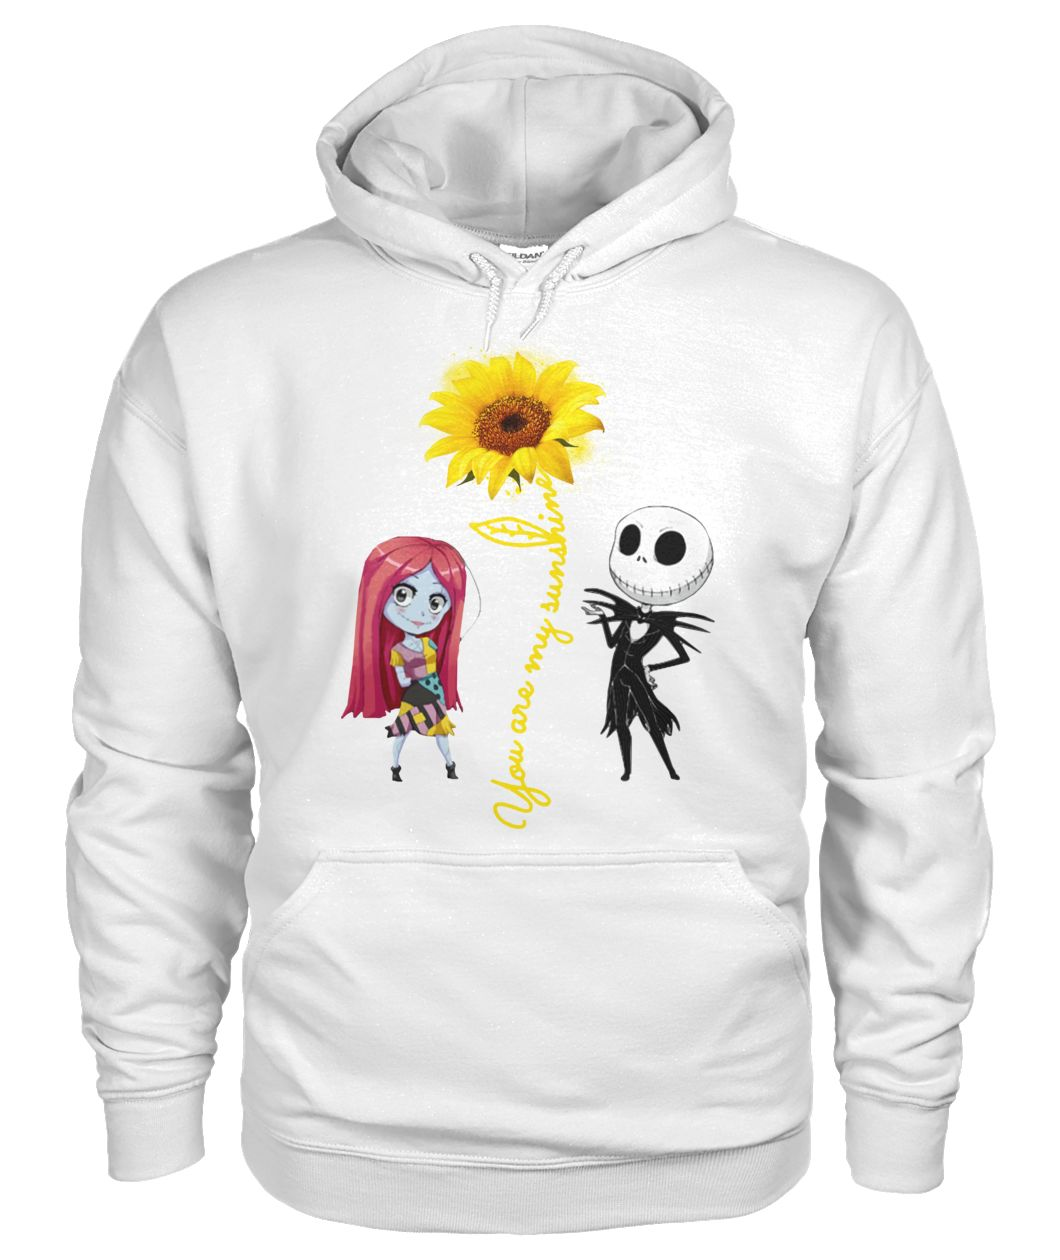 You are my sunshine Jack and Sally chibi gildan hoodie